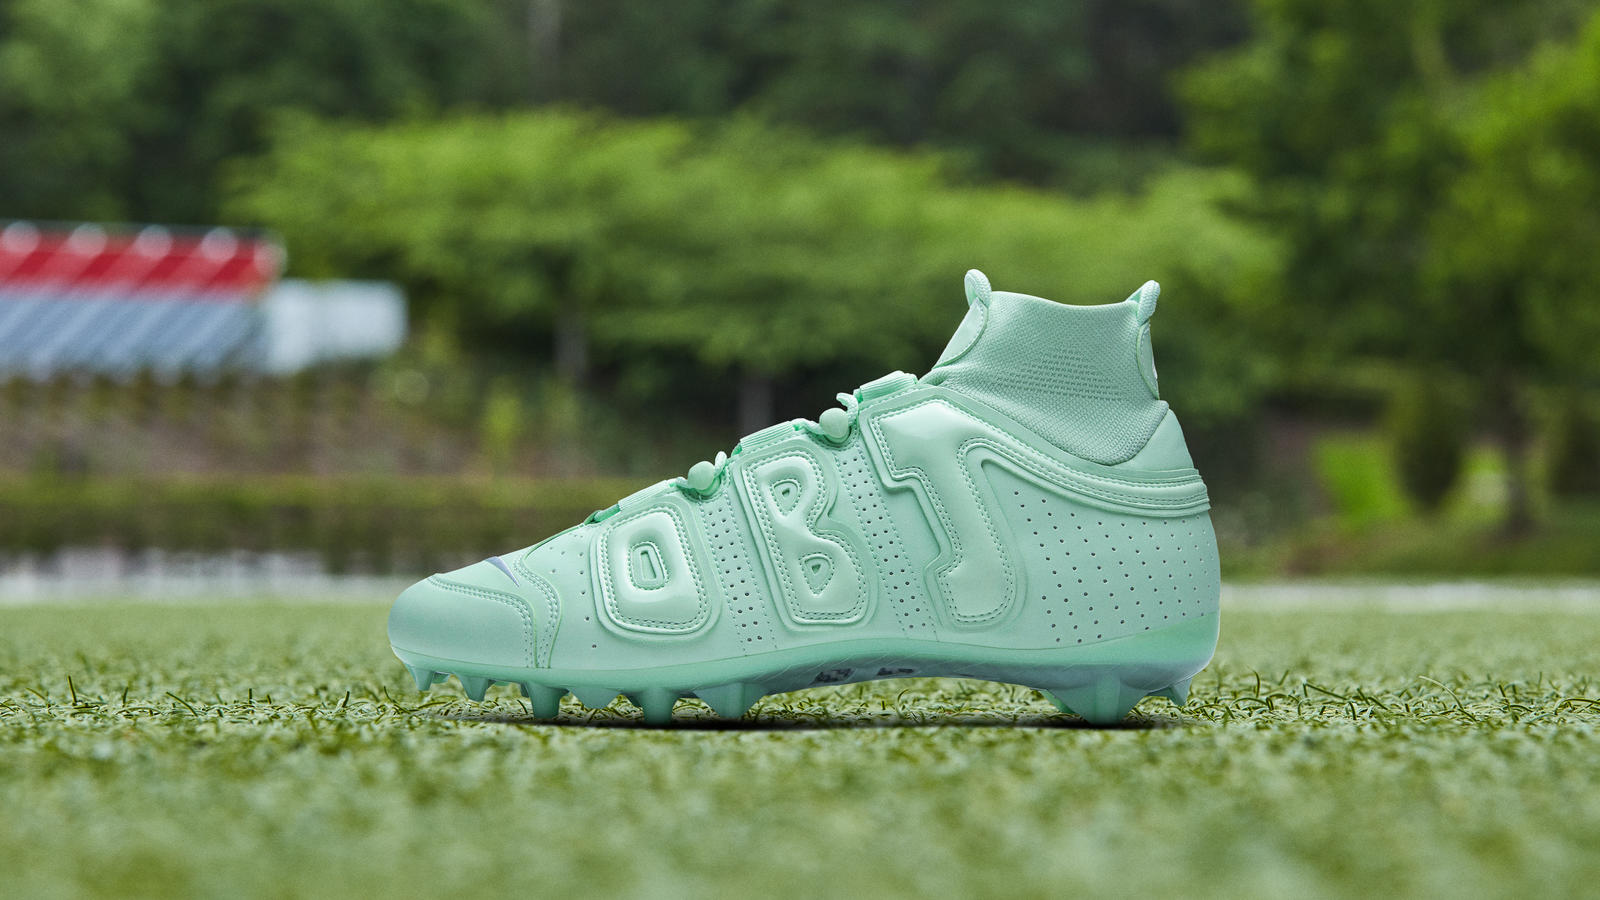 obj-week-10-pregame-cleat-nike-air-frosted-spruce